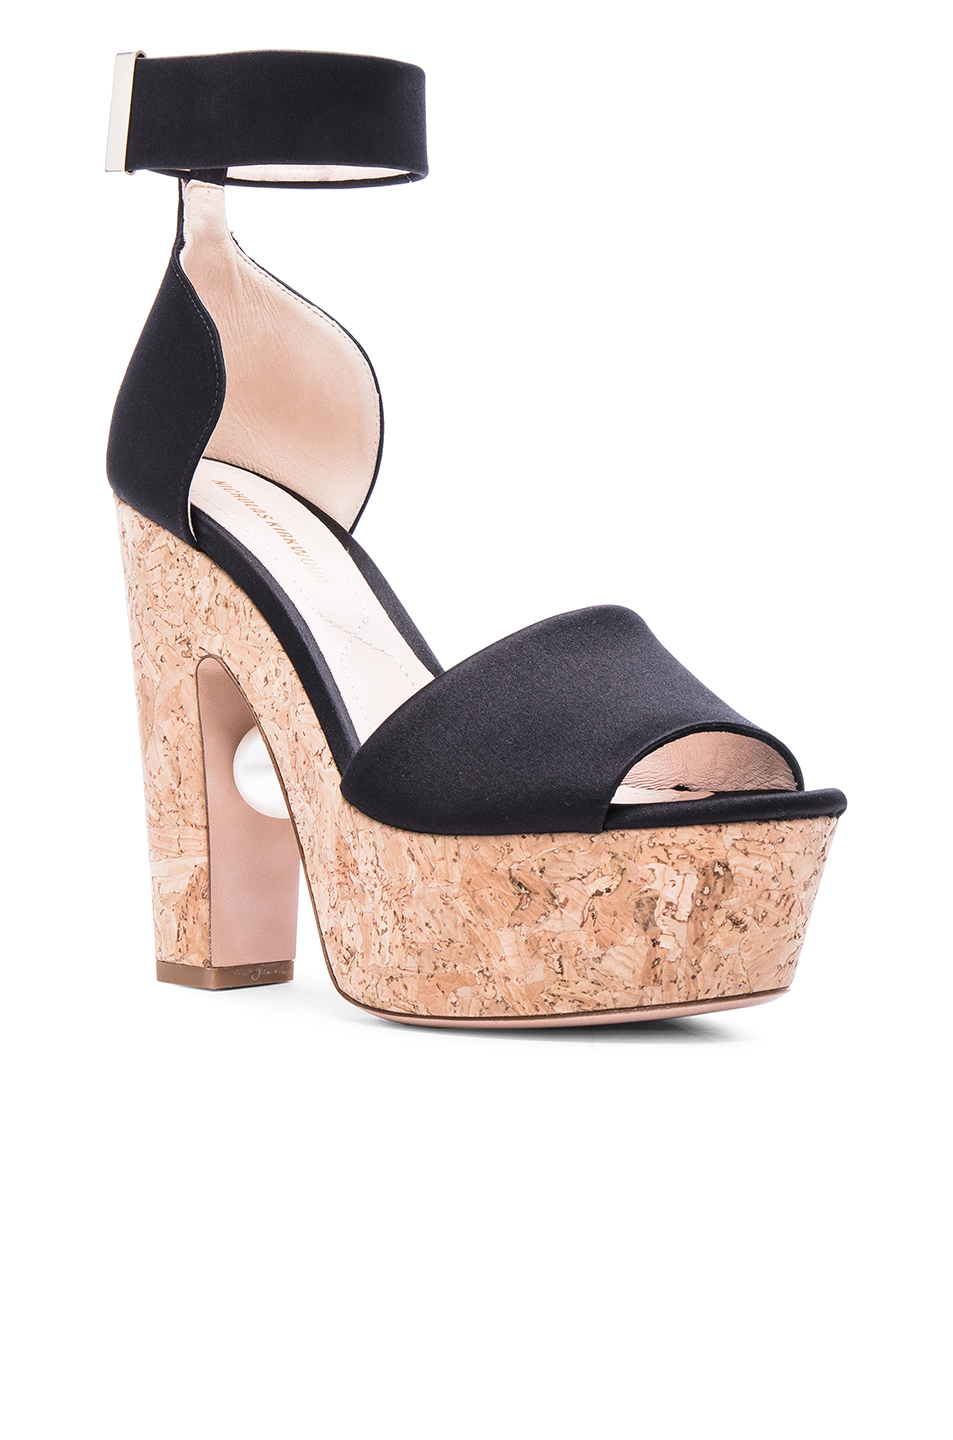 0ec68bf841f Lyst - Nicholas Kirkwood Maya Pearl Leather Platform Sandals in Black